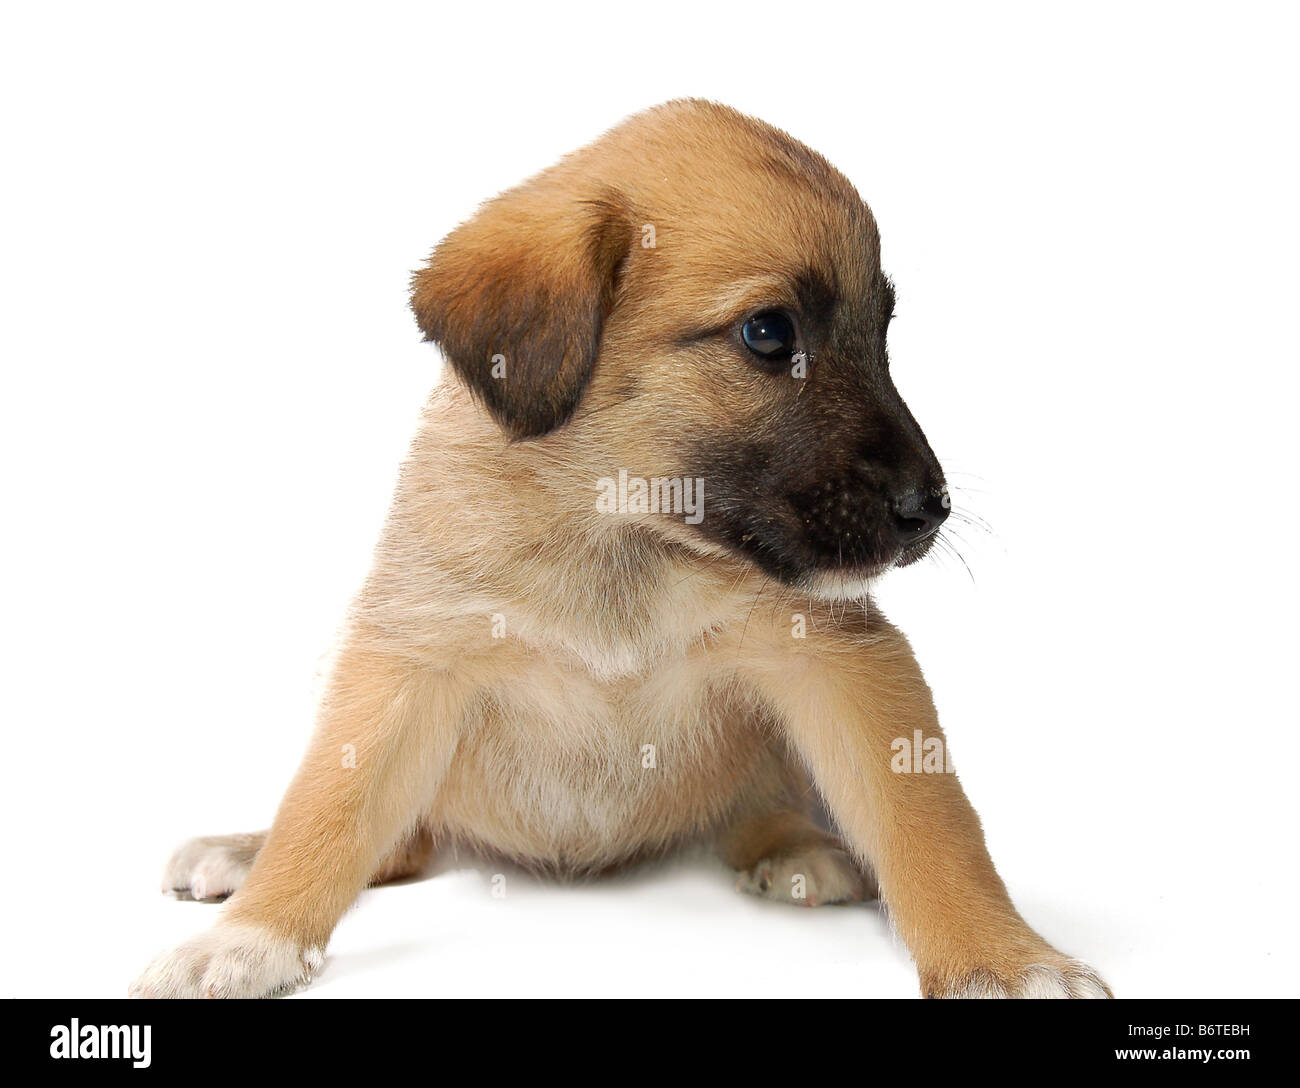 Cute puppy on white background - Stock Image